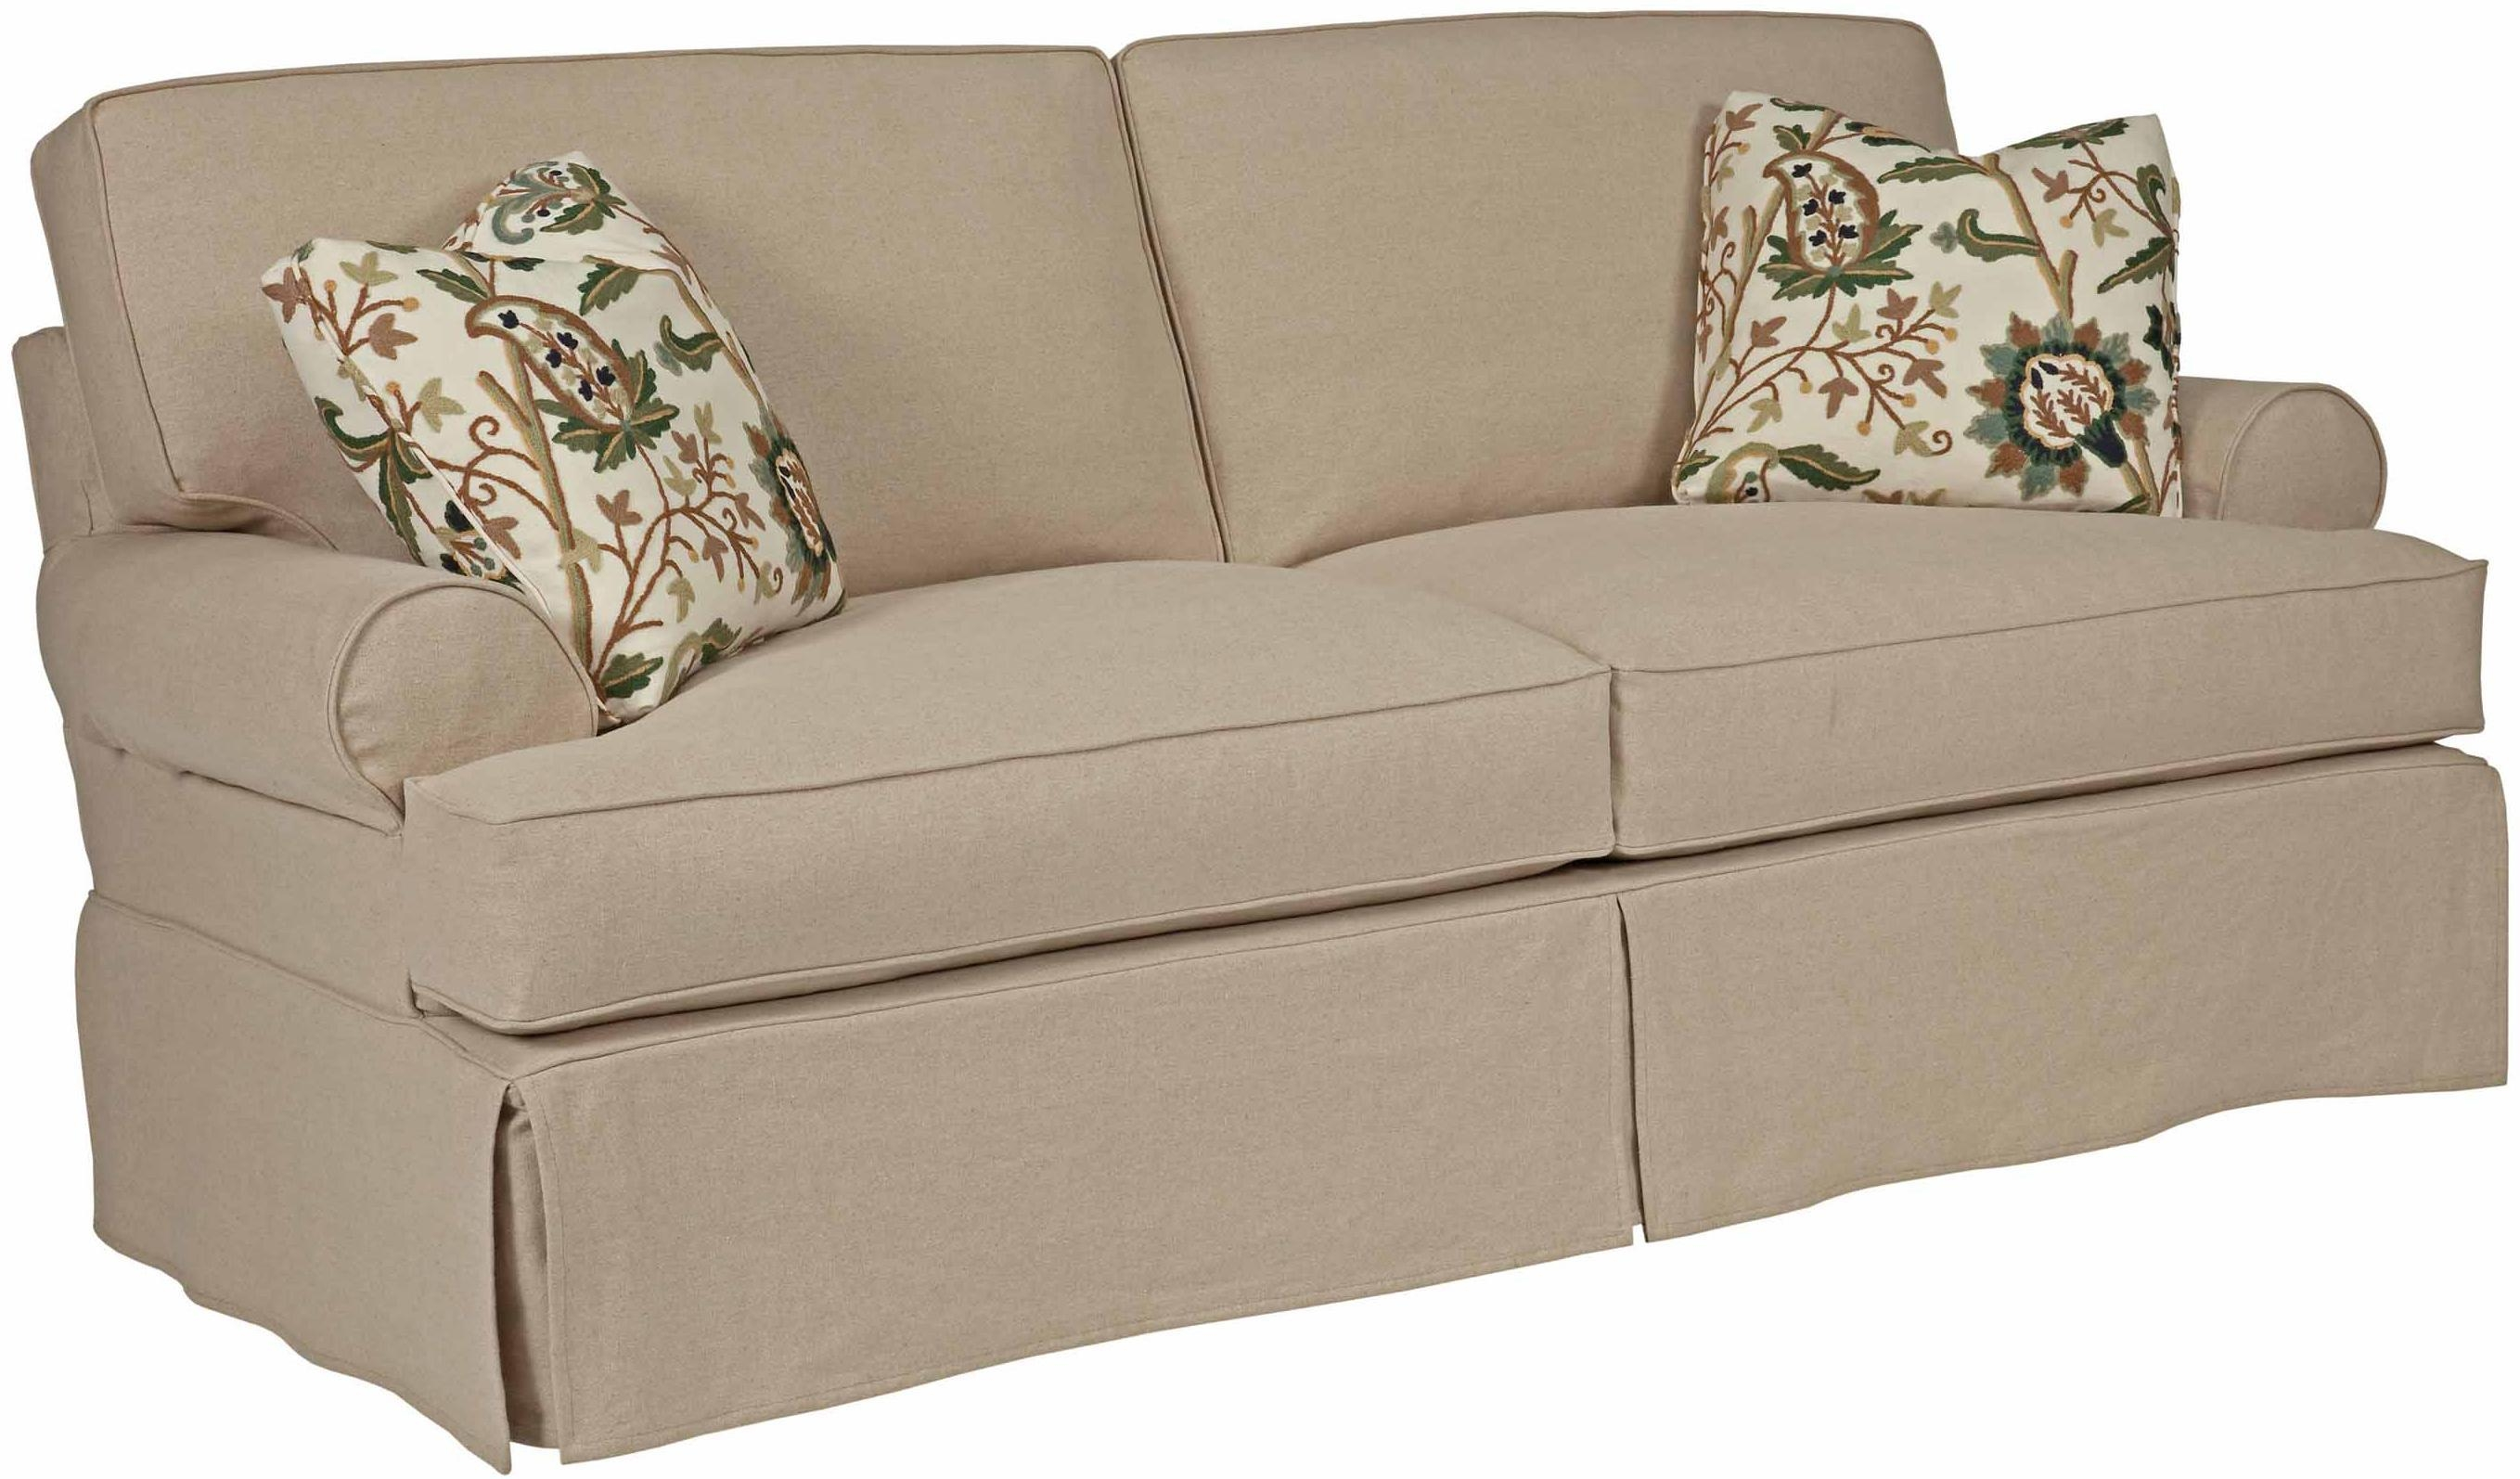 Furniture: Couch Slip Cover Will Stand Up To The Rigors Of With Regard To Loveseat Slipcovers 3 Pieces (View 9 of 20)